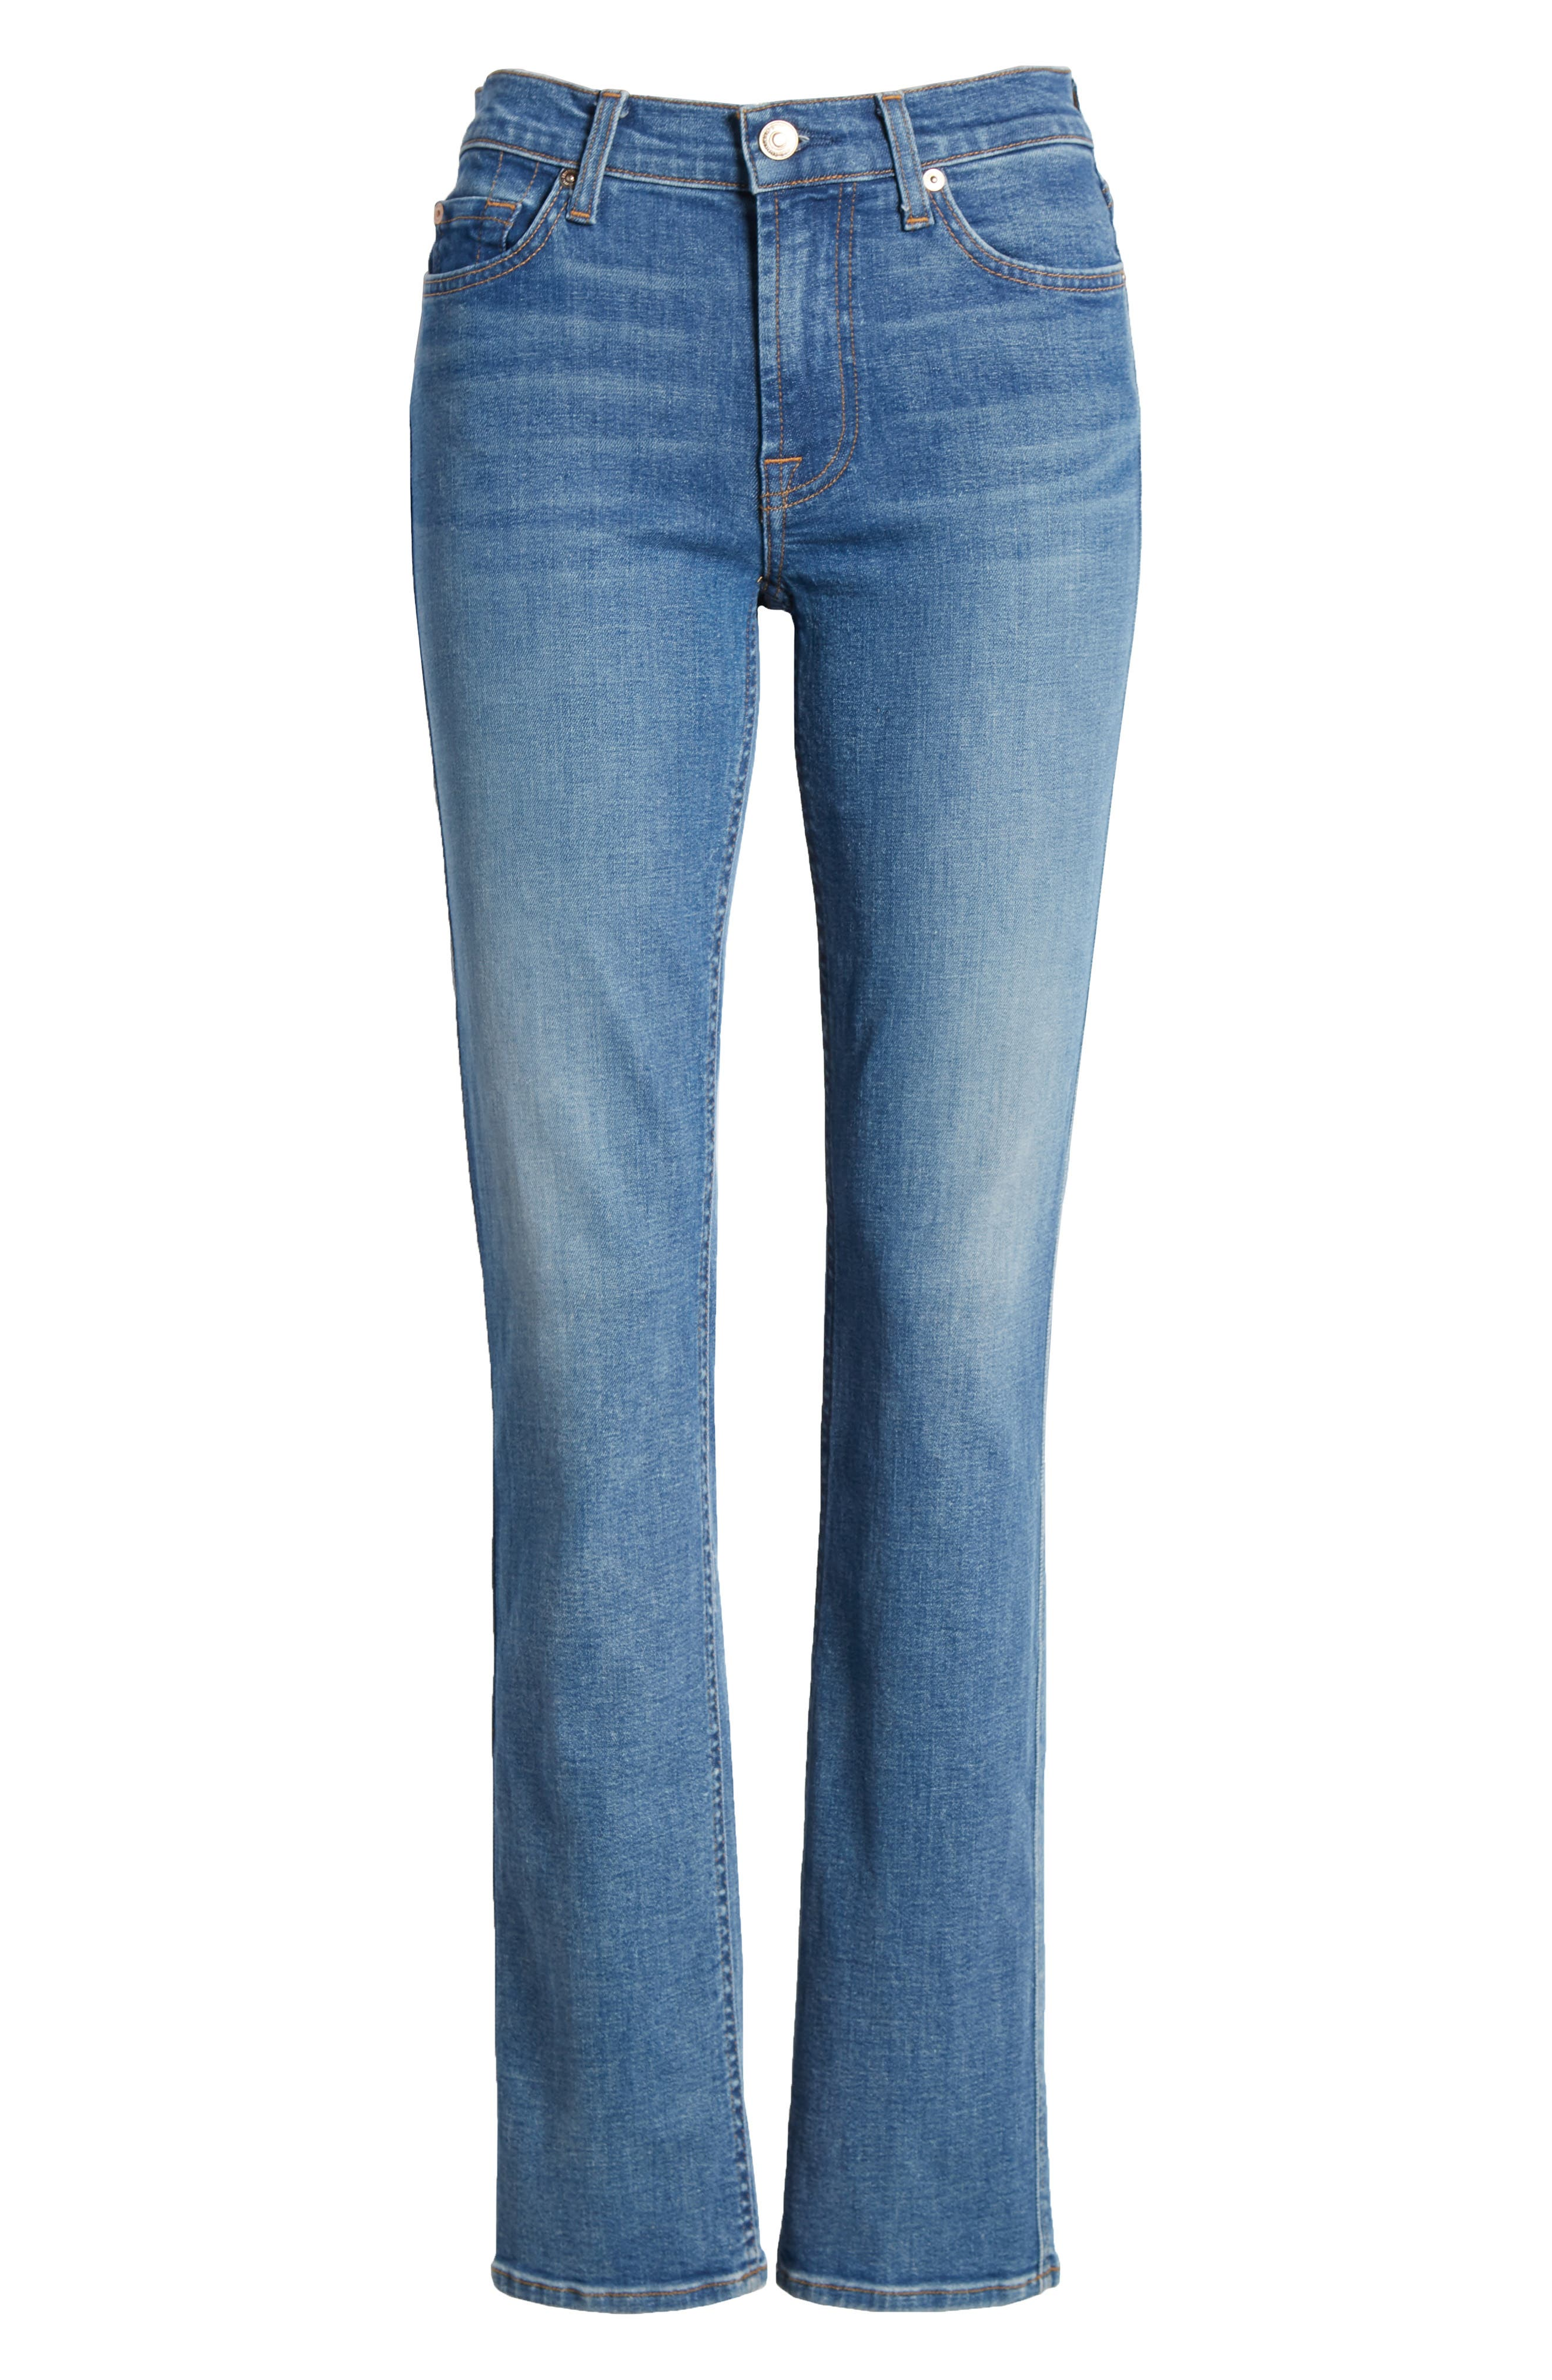 Dylan Straight Leg Jeans,                             Alternate thumbnail 7, color,                             400